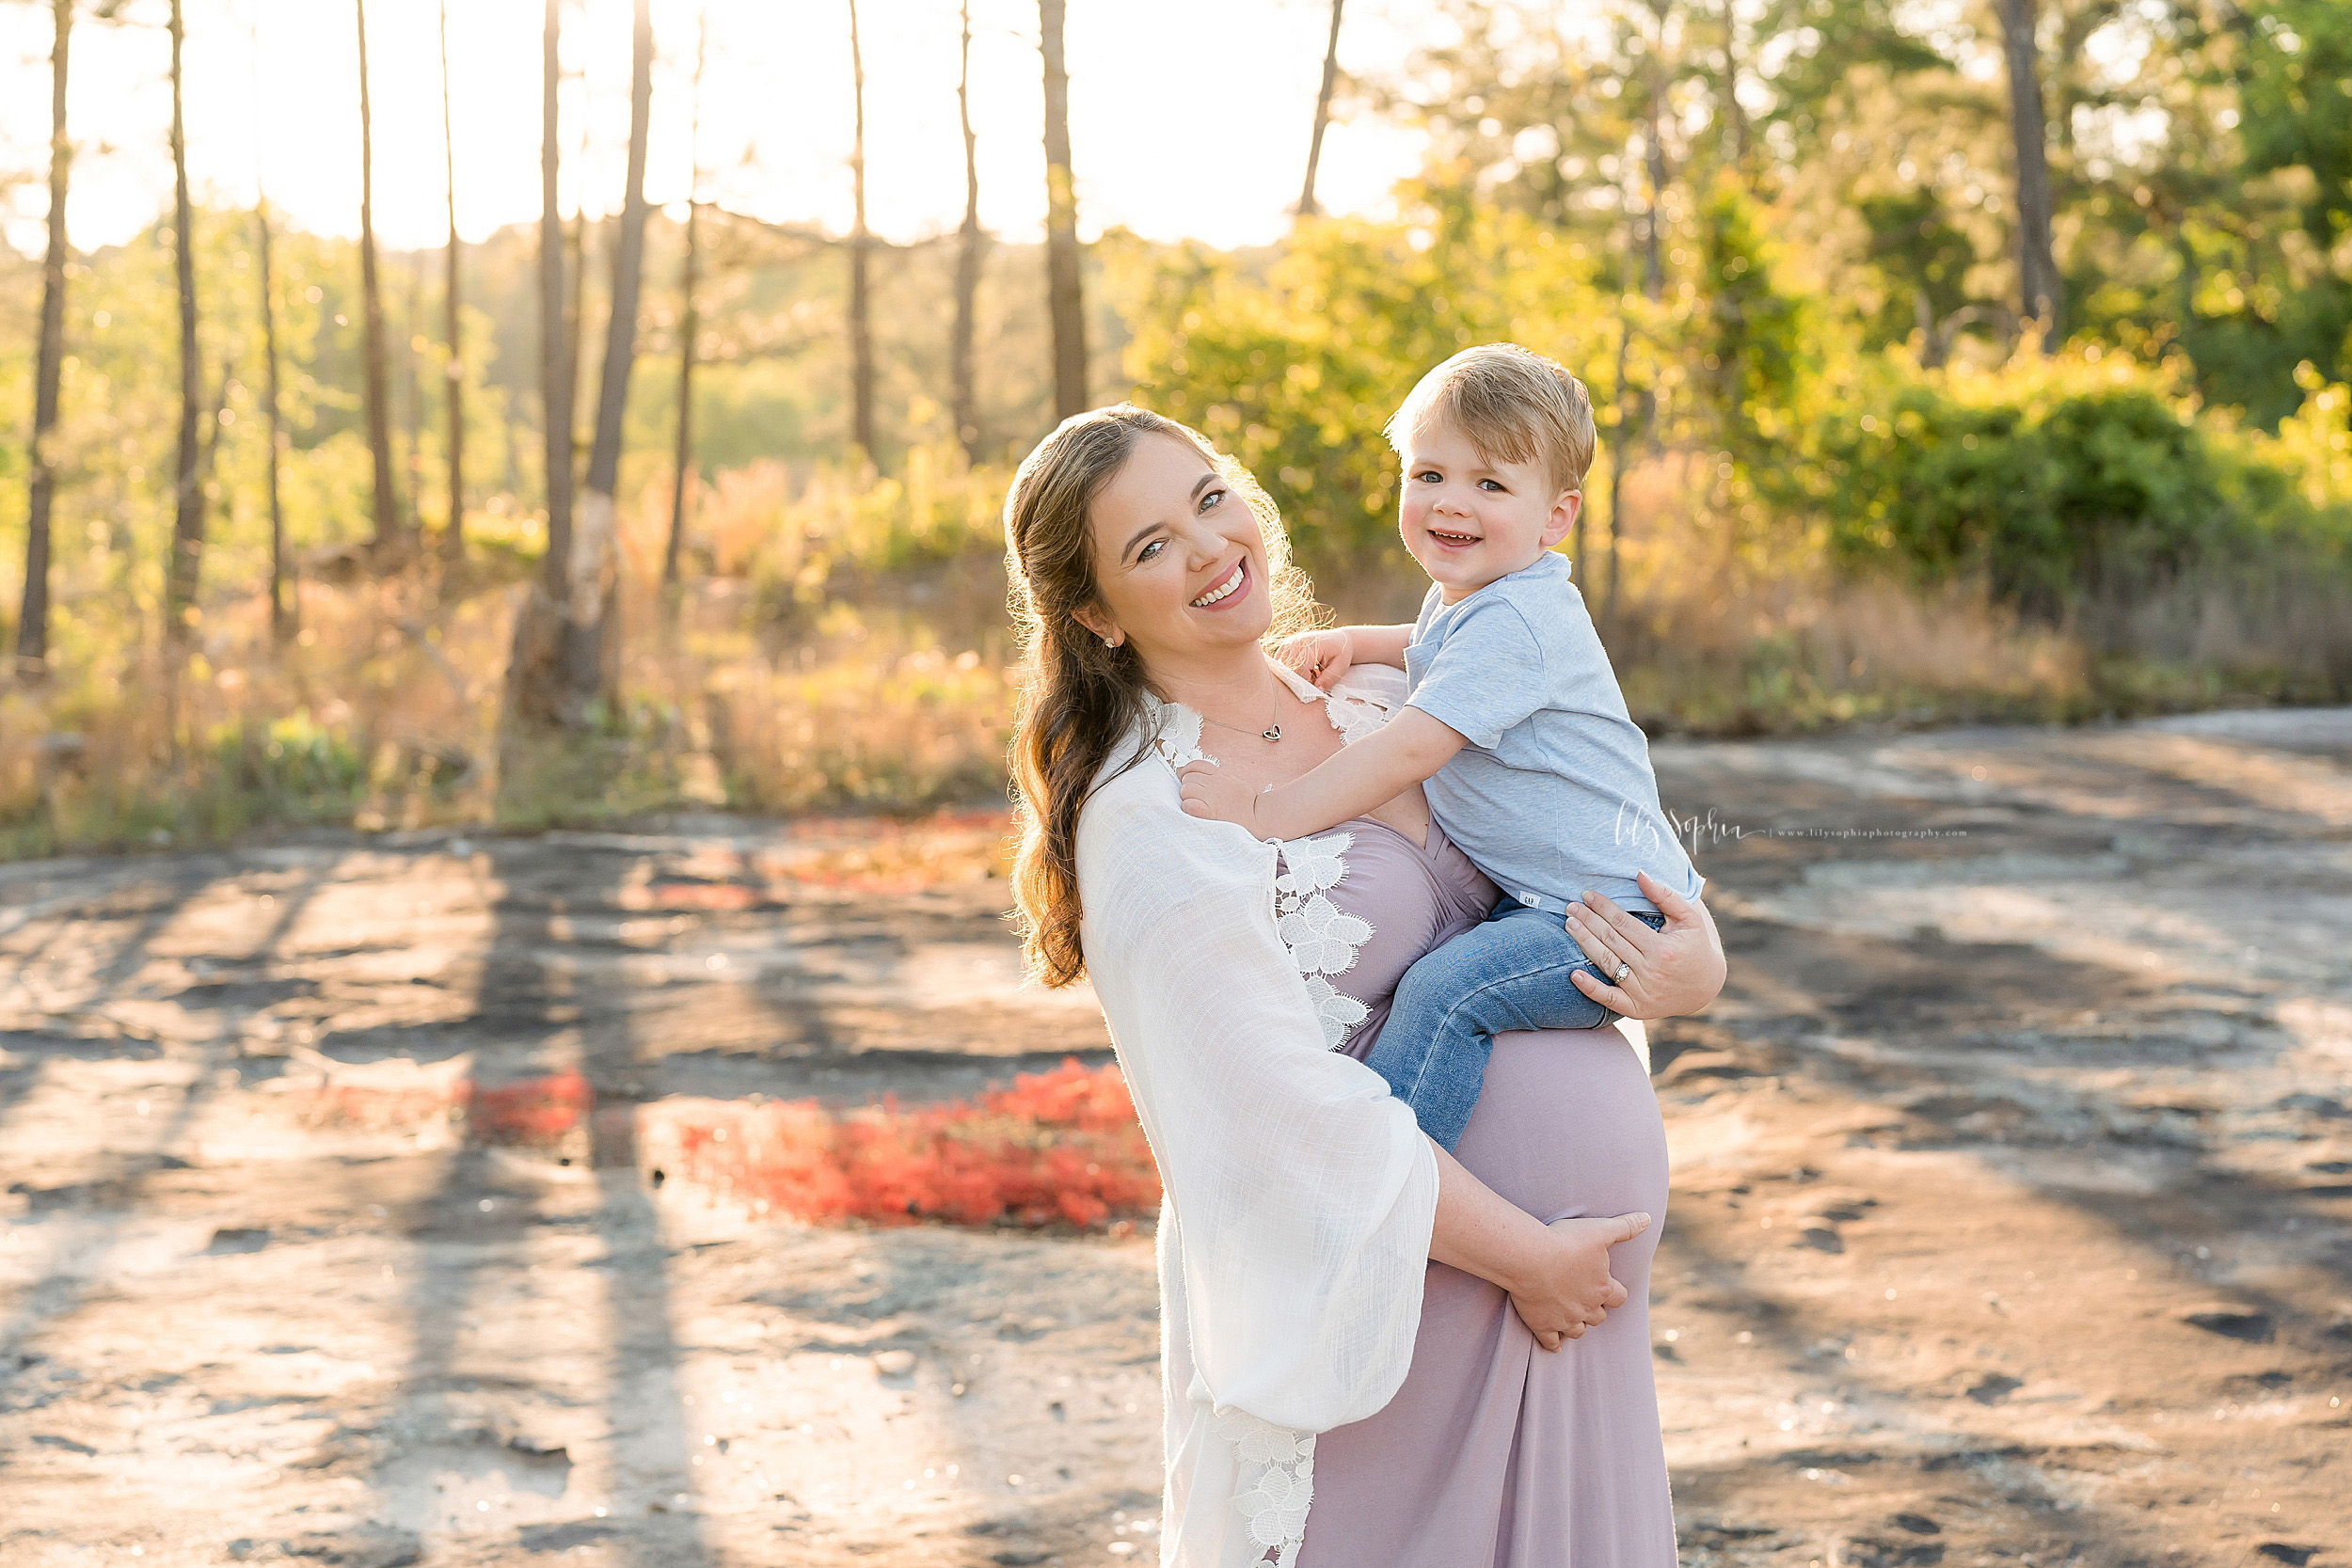 atlanta-brookhaven-decatur-candler-park-sandy-springs-buckhead-virginia-highlands-west-end-decatur-lily-sophia-photography-family-big-brother-expecting-newborn-baby-girl-couples-family-maternity-outdoor-session_1588.jpg